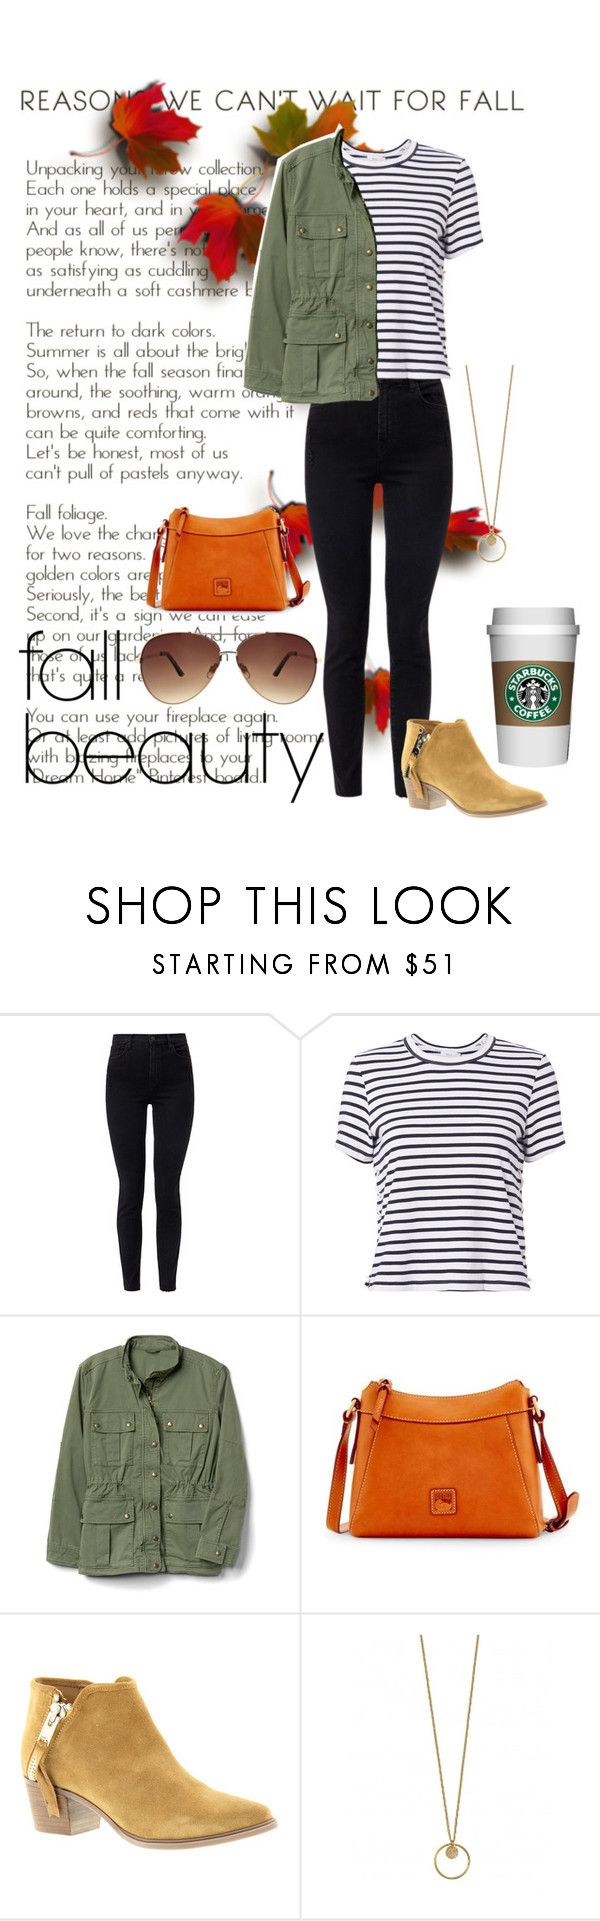 """""""Fall Beauty"""" by orisky123 ❤ liked on Polyvore featuring J Brand, A.L.C., Dooney & Bourke, Steven by Steve Madden and Ashley Stewart"""